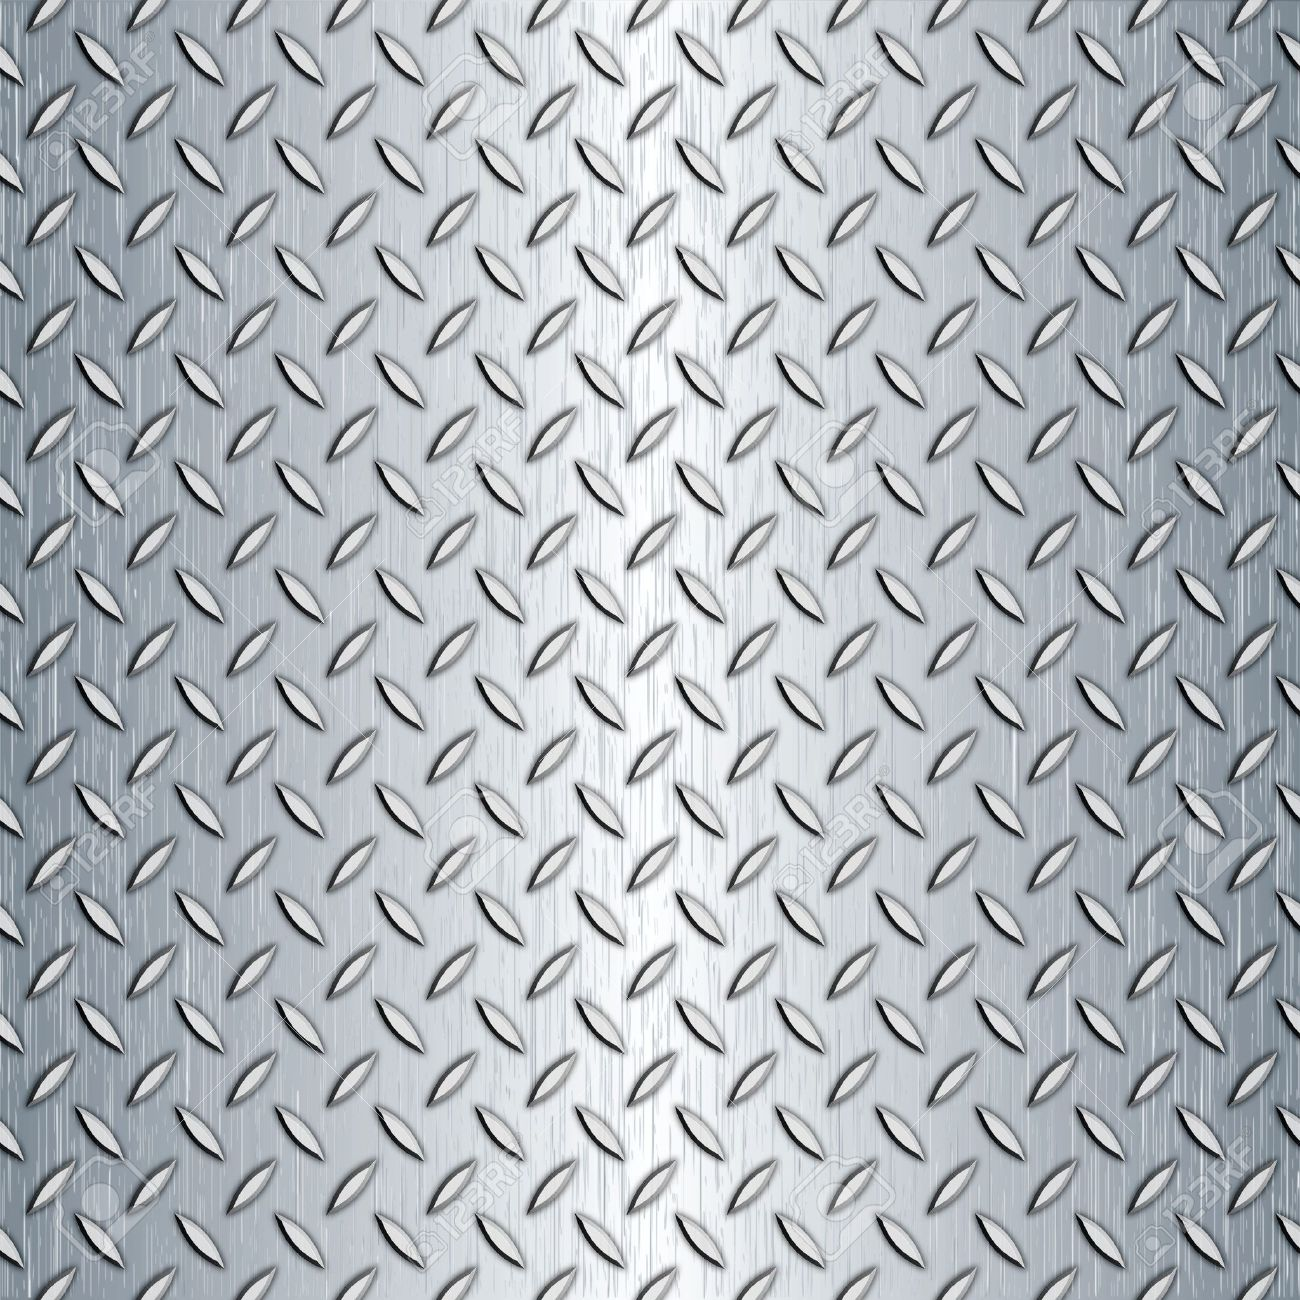 Steel diamond plate pattern. You can tile this seamlessly as a pattern to fit whatever size you need. Stock Photo - 8204616